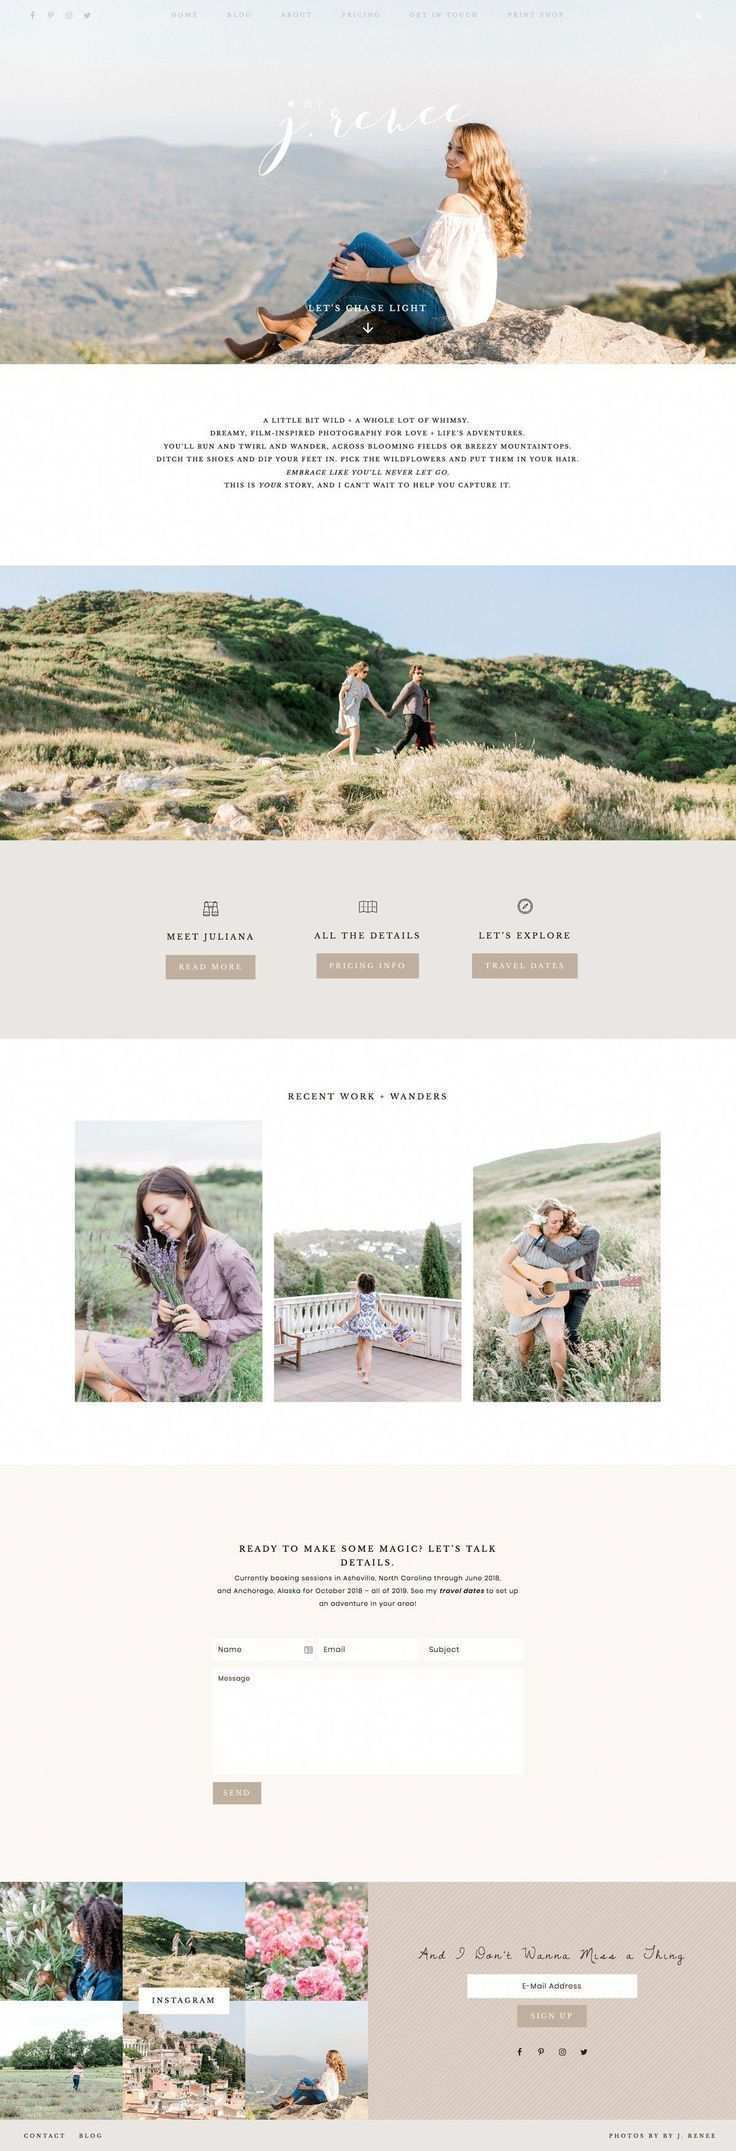 Juliana Renee Is A Talented Lifestyle Photographer With An Amazing Eye Her Portfolio Of Work Is Simply Stunning An Web Design Web Design Trends Website Design